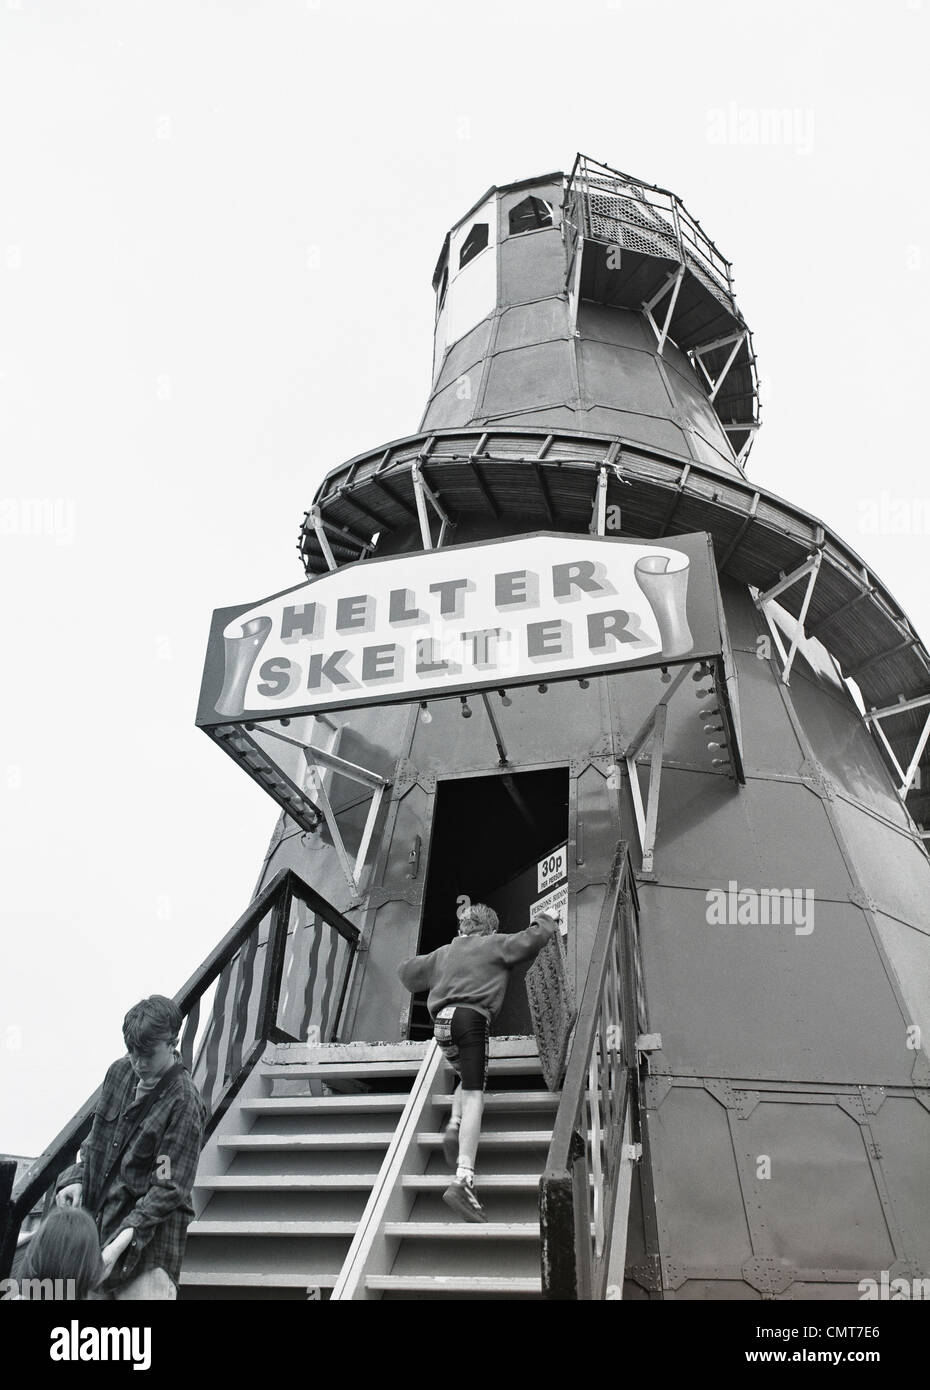 A helter skelter fairground attraction in use in the 1980's - Skerries, county Dublin, Ireland - Stock Image